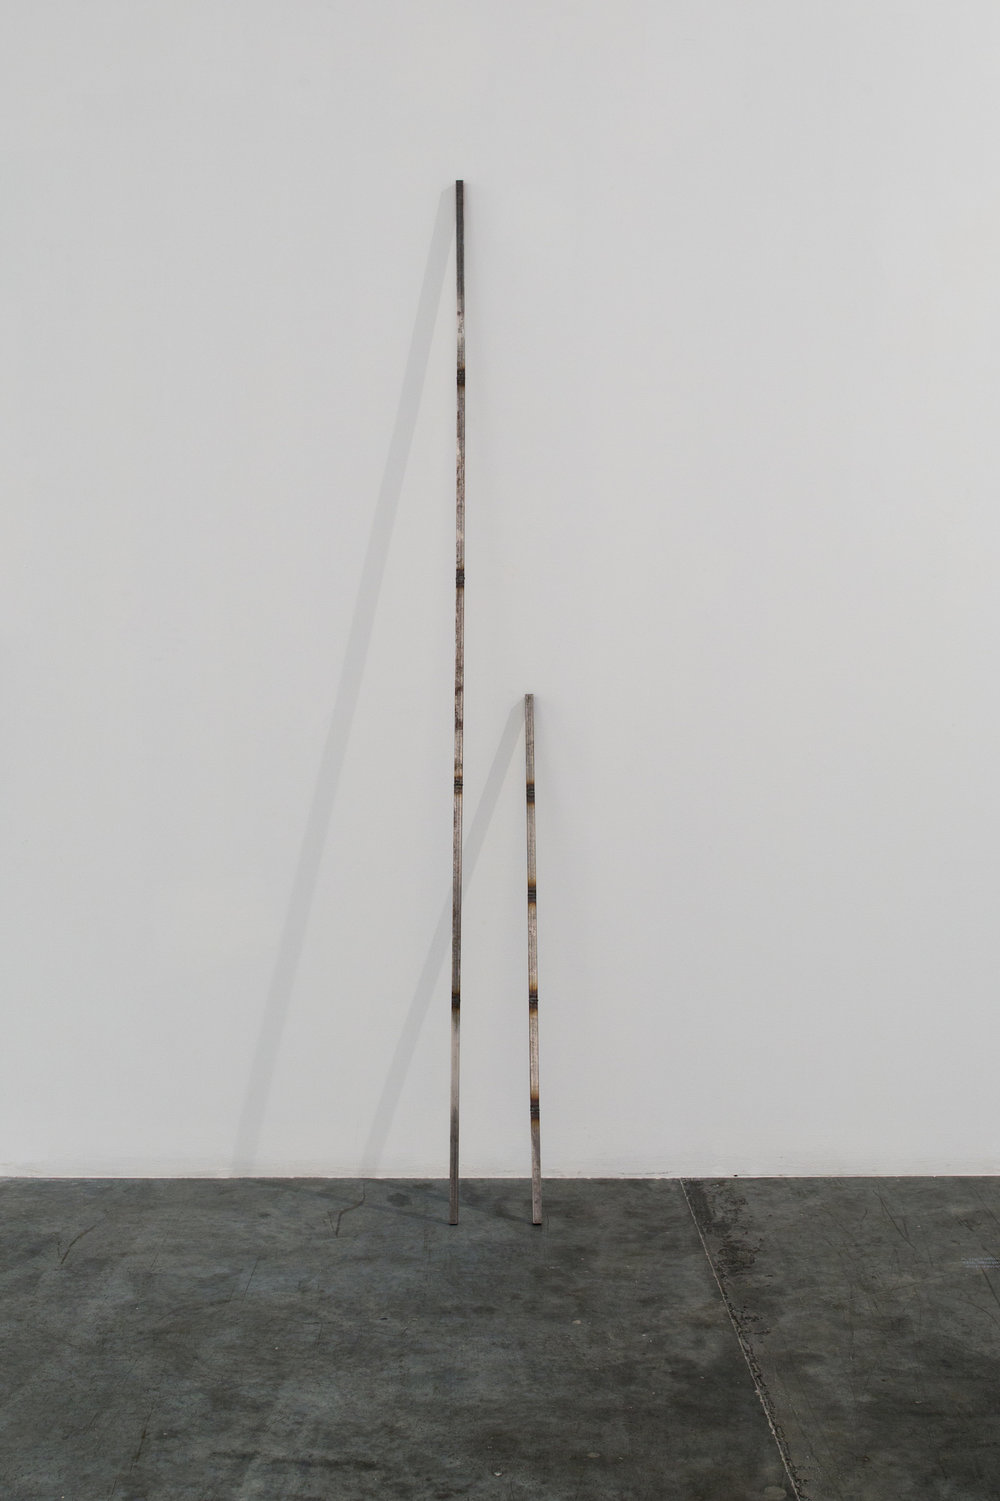 Stéphanie Saadé  Scarred Object 2013 Cut and welded varnished iron bars 1.5 x 1.5 x 100 cm and 1.5 x 1.5 x 200 cm Edition 1/3